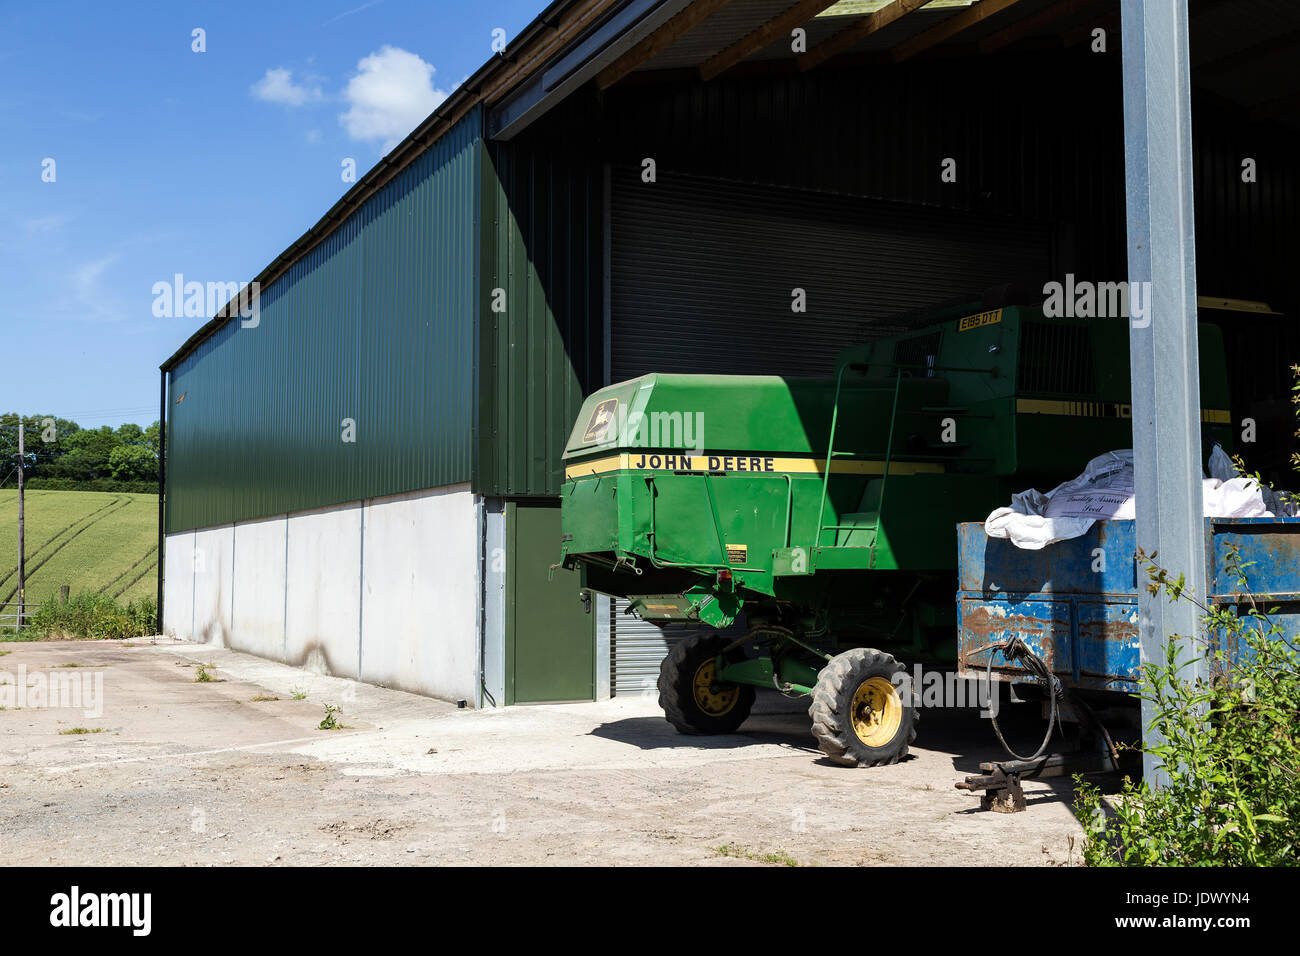 John Deere combine in farm yard,agriculture, combine, crop, deere, farm, green, harvester, john, morning, rural, Stock Photo